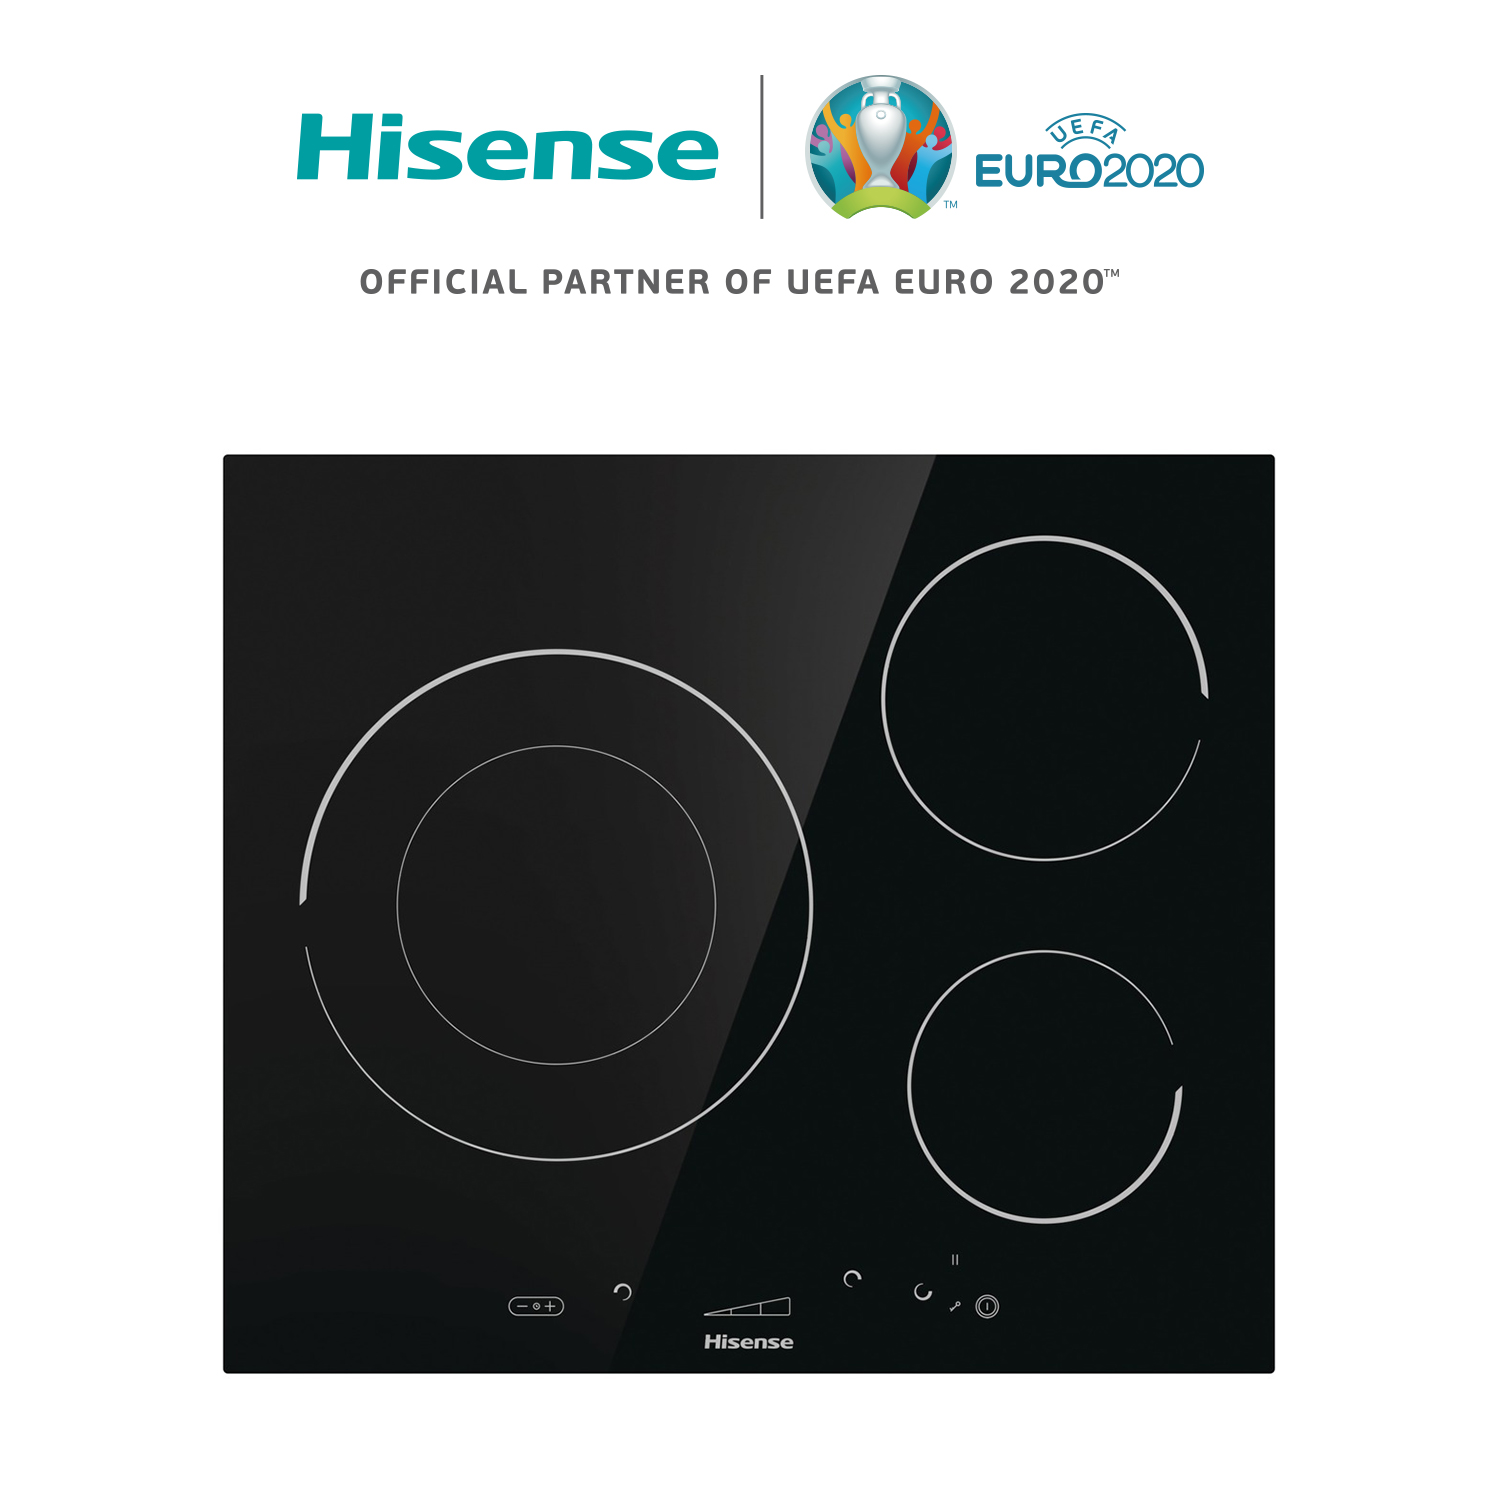 Hisense I6341C Induction Cooker, Ceramic Hob, 7200W, SliderTouch, 59,5 × 5,8 × 52 Cm, 3 Burners, Safety Lock